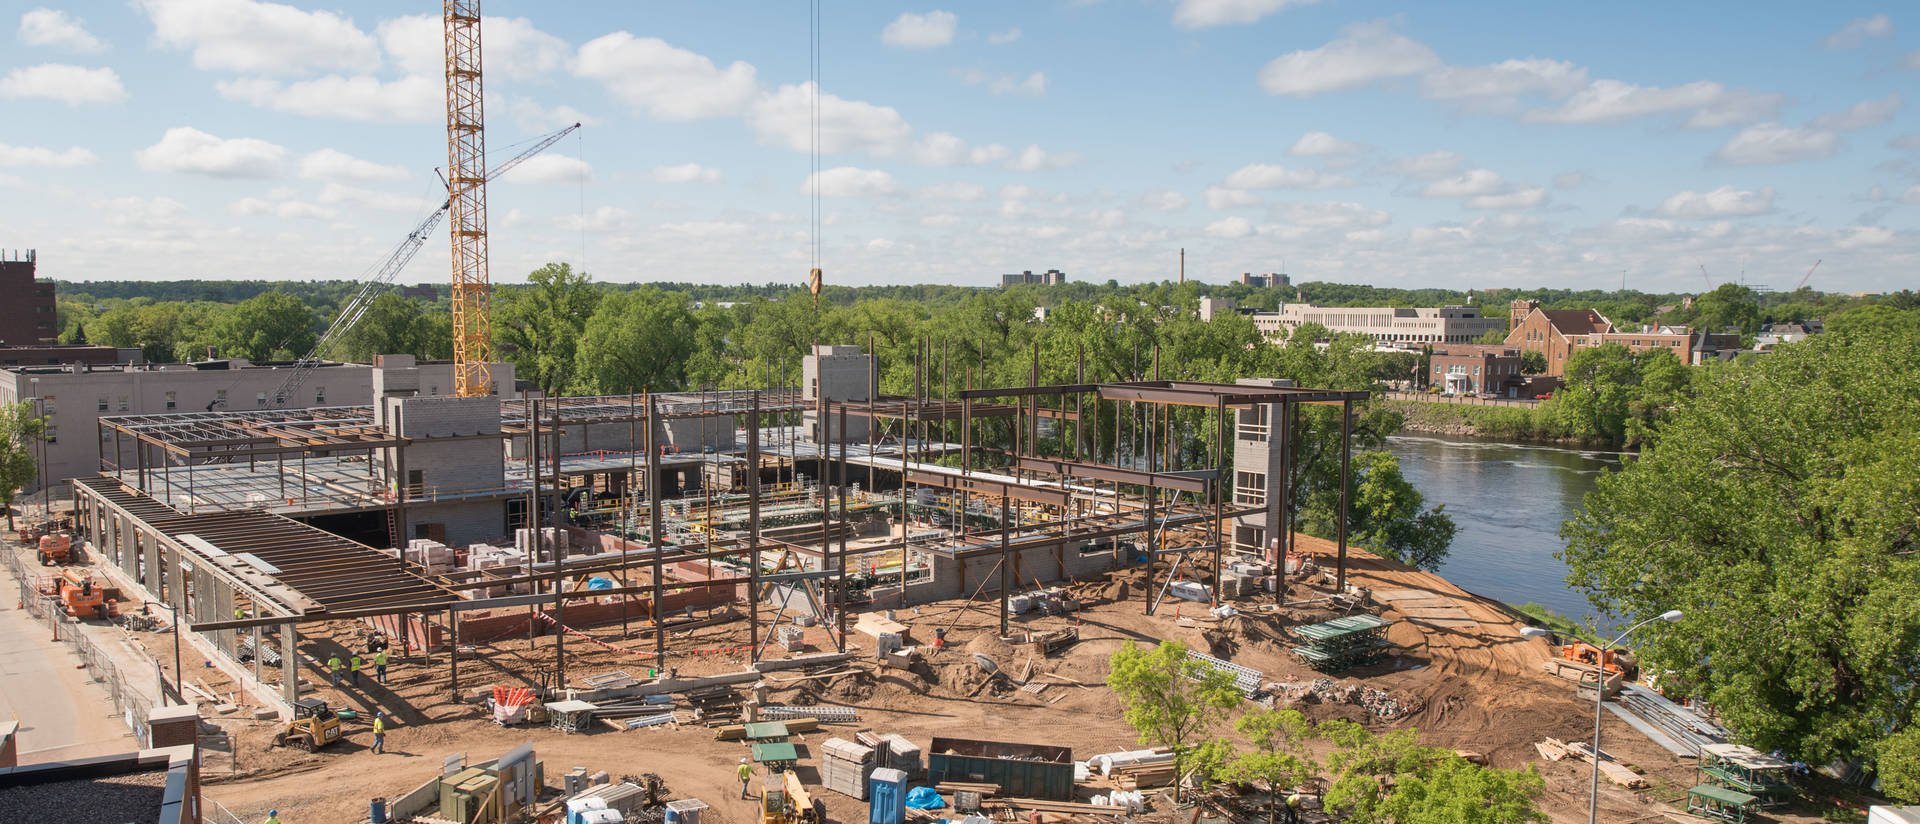 The Confluence Arts Center Building is starting to take shape as construction progresses